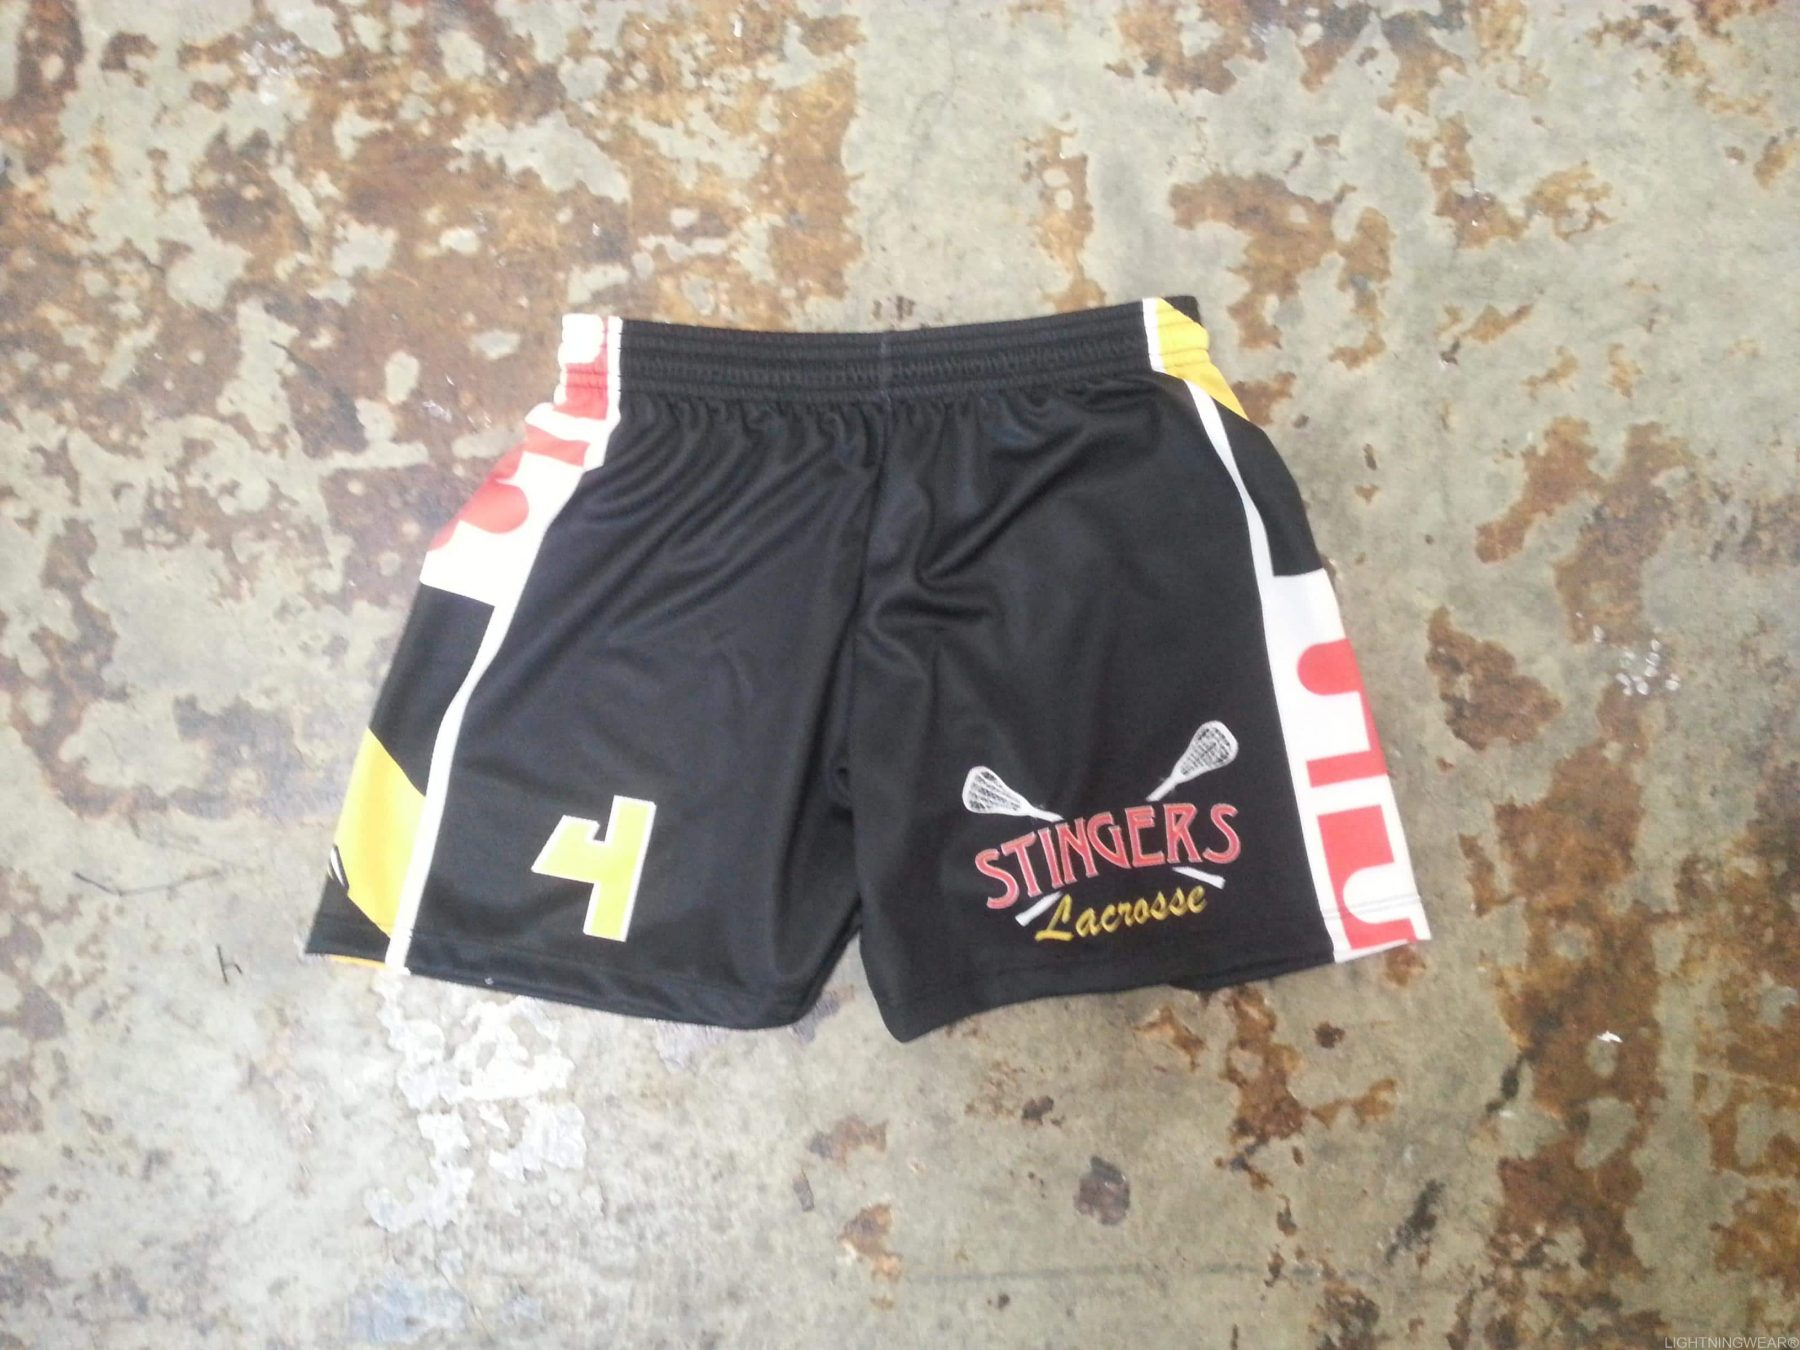 stingers girls lacrosse shorts